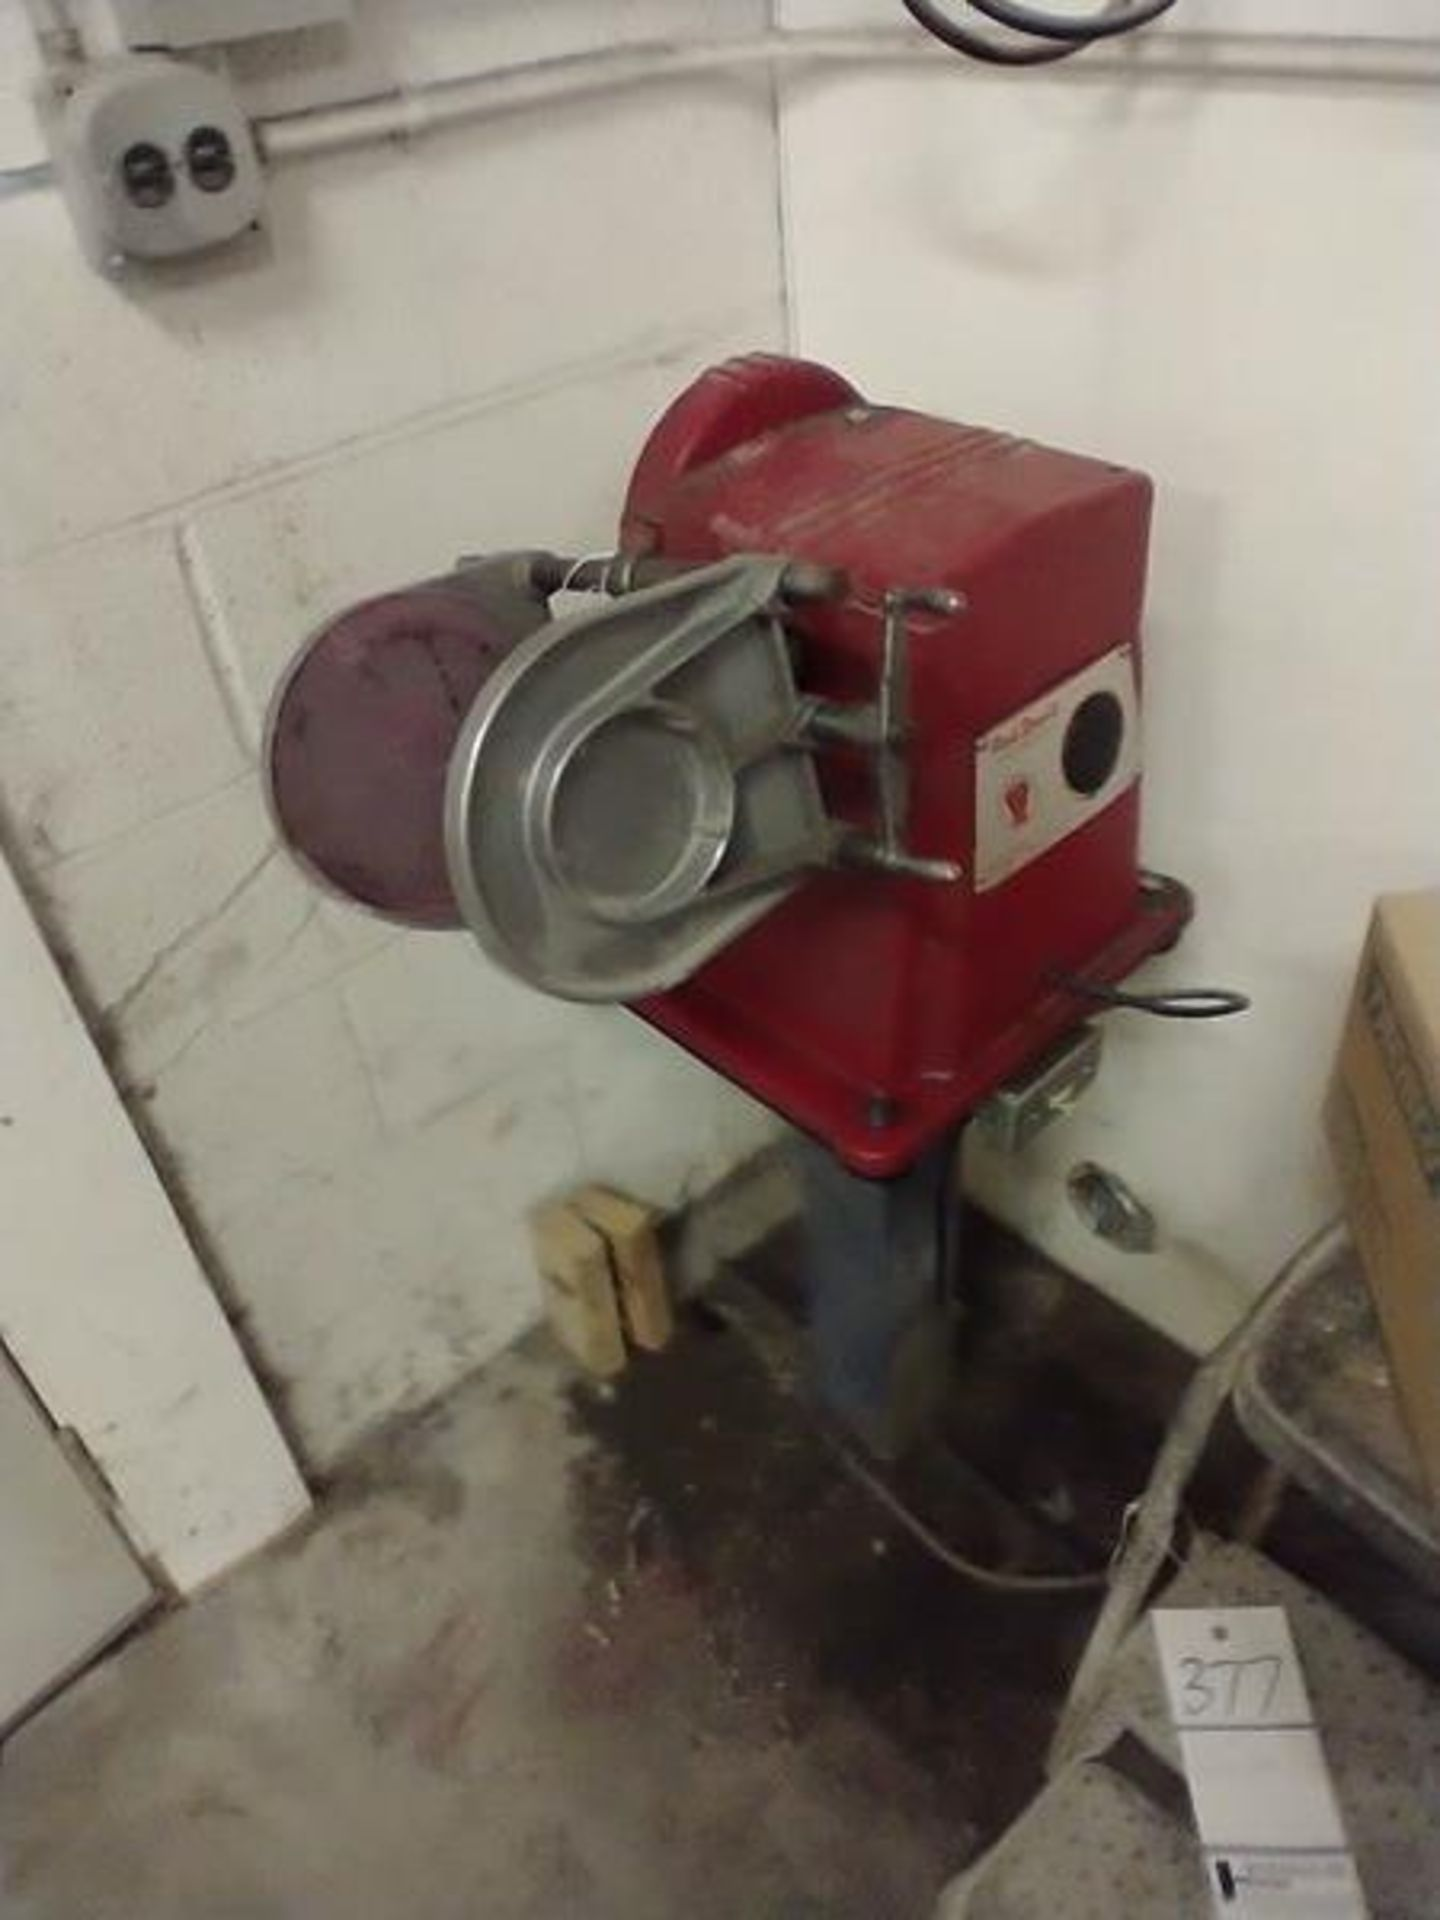 RED DEVIL PAINT SHAKER ON STAND - CAT NO. 30, 1/4 HP, SER. 7-300-60 - Image 3 of 3